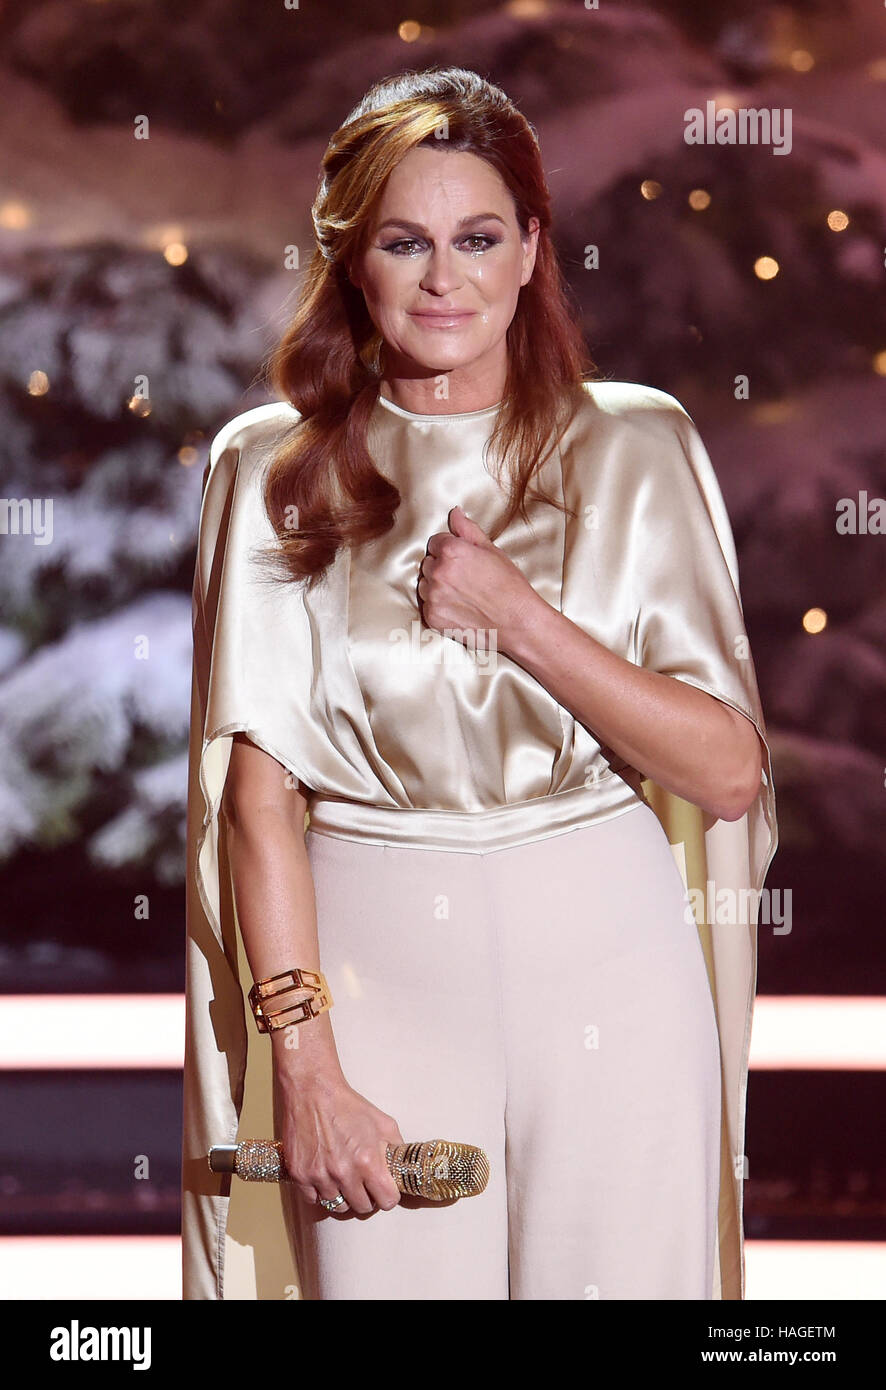 Andrea berg 2016 hd image free - 30th Nov 2016 Tears Run Down The Cheeks Of Singer Andrea Berg After Her Performance On The Tv Show Die Schoensten Weihnachts Hits Lit